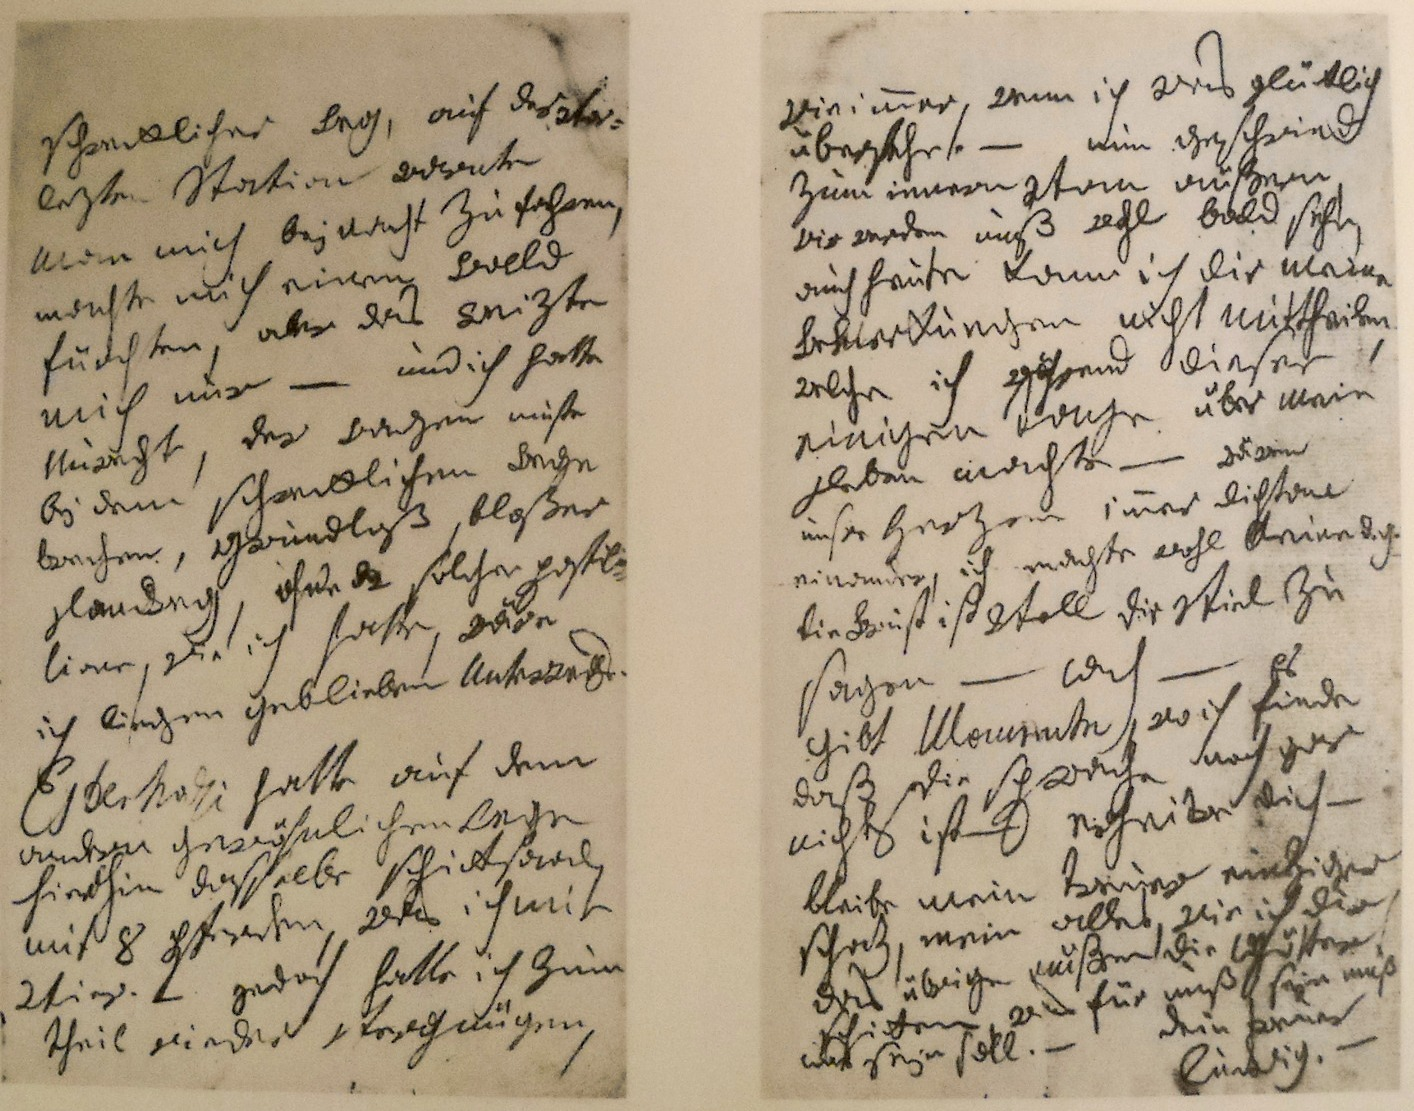 Beethoven's love letters to his Immortal Beloved